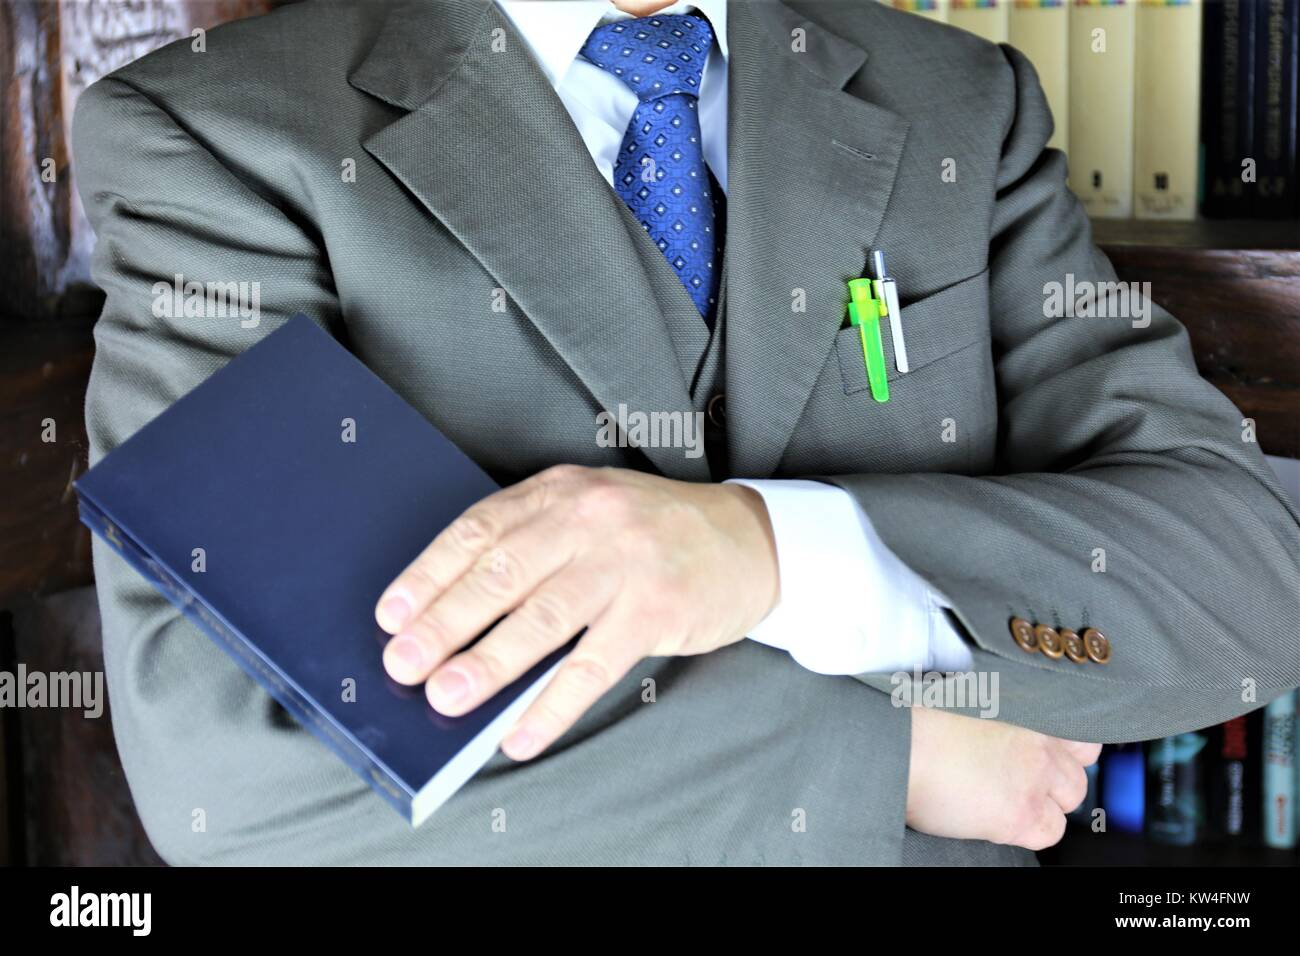 An concept Image of a Manager in a library - Stock Image